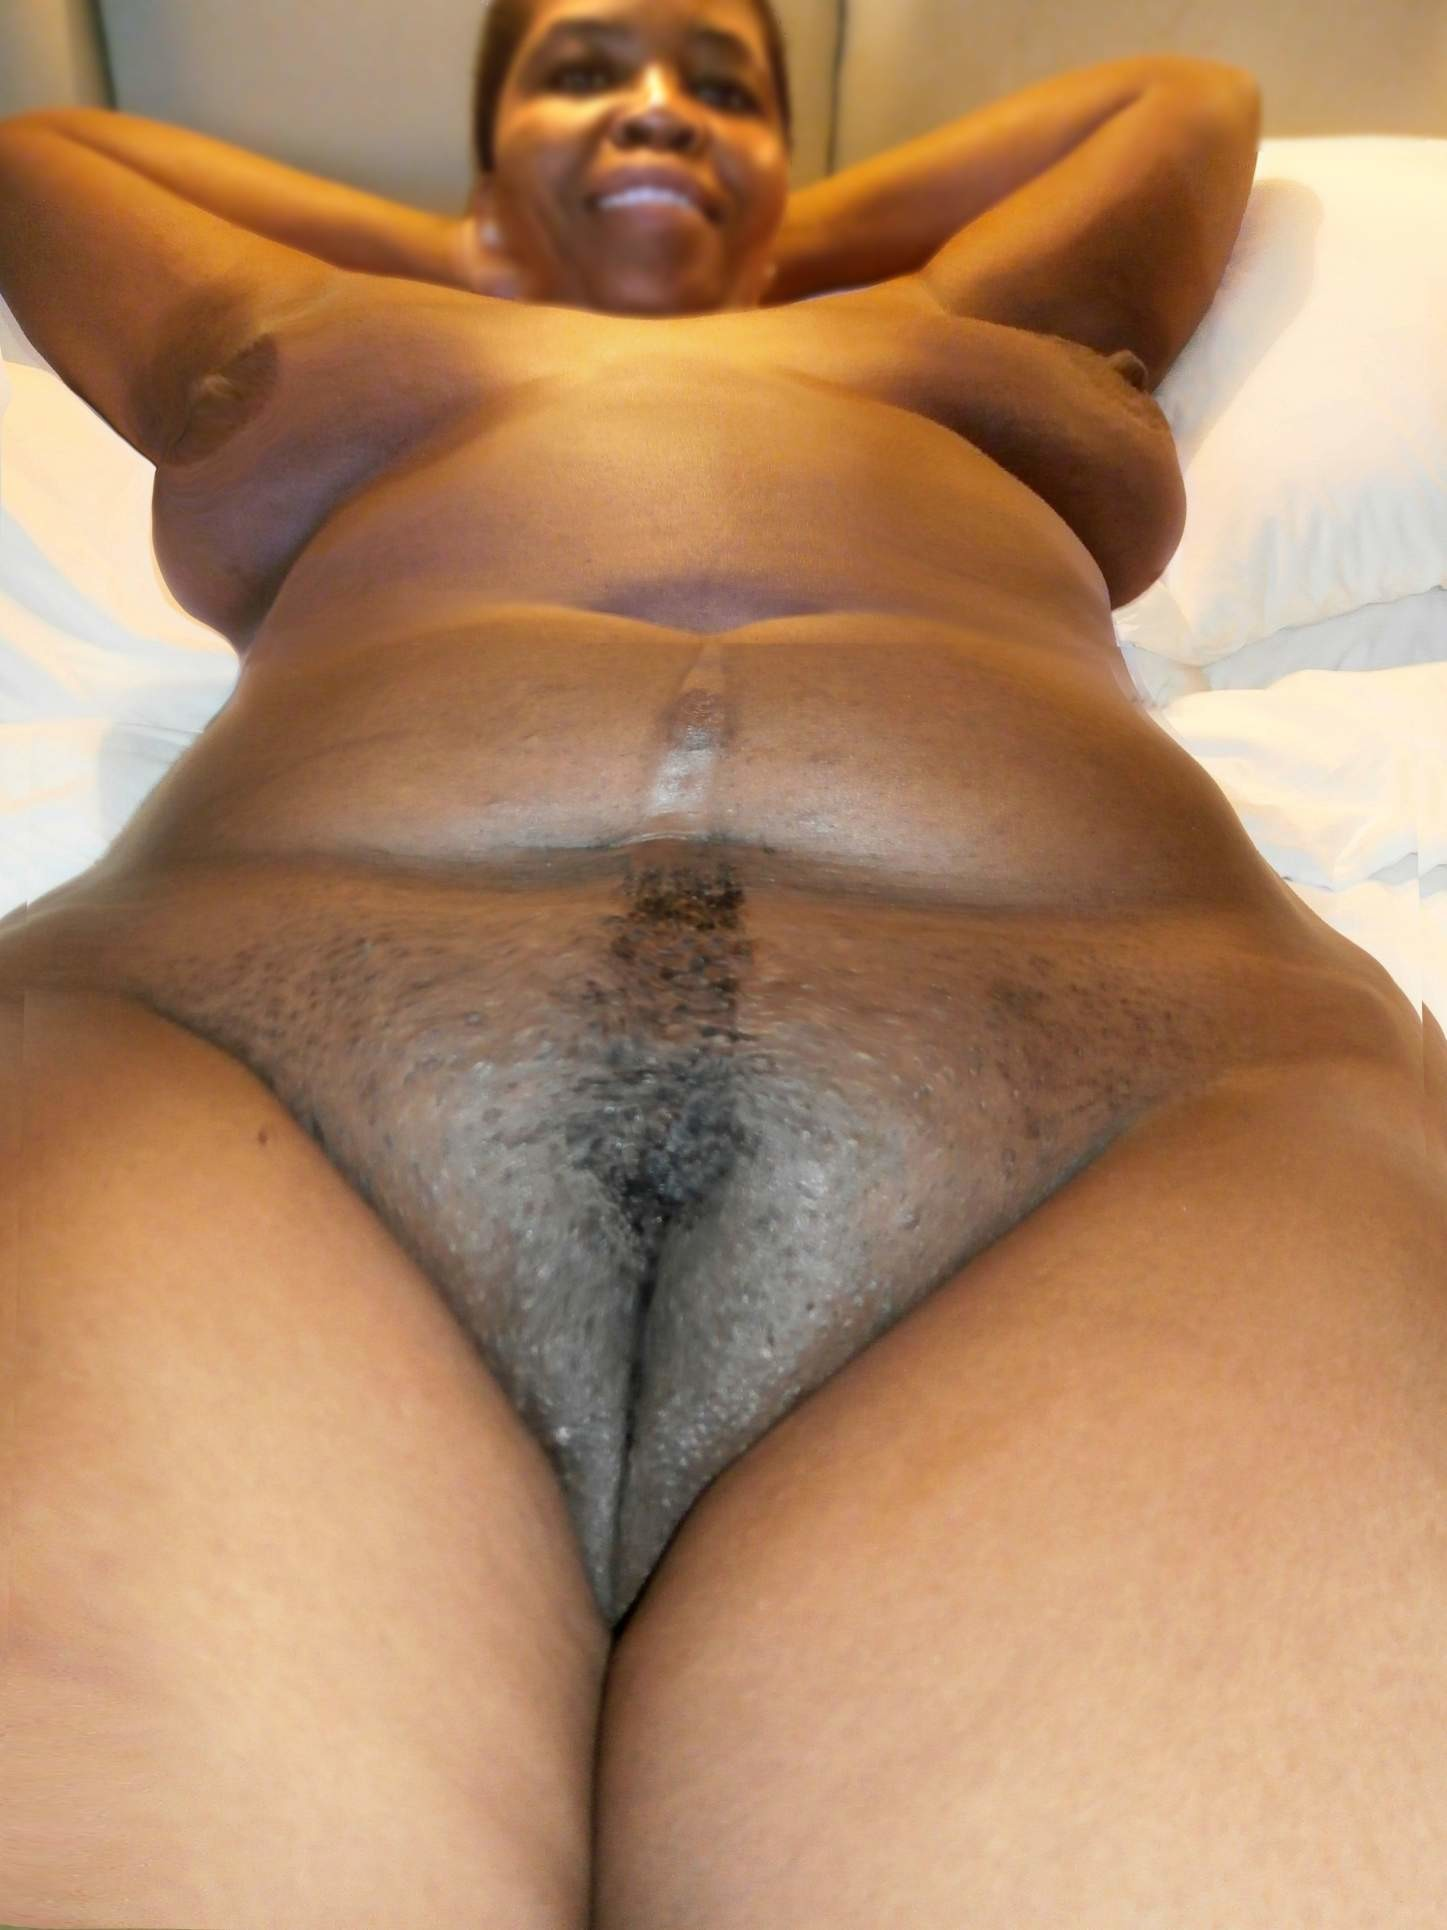 ebony porn sites